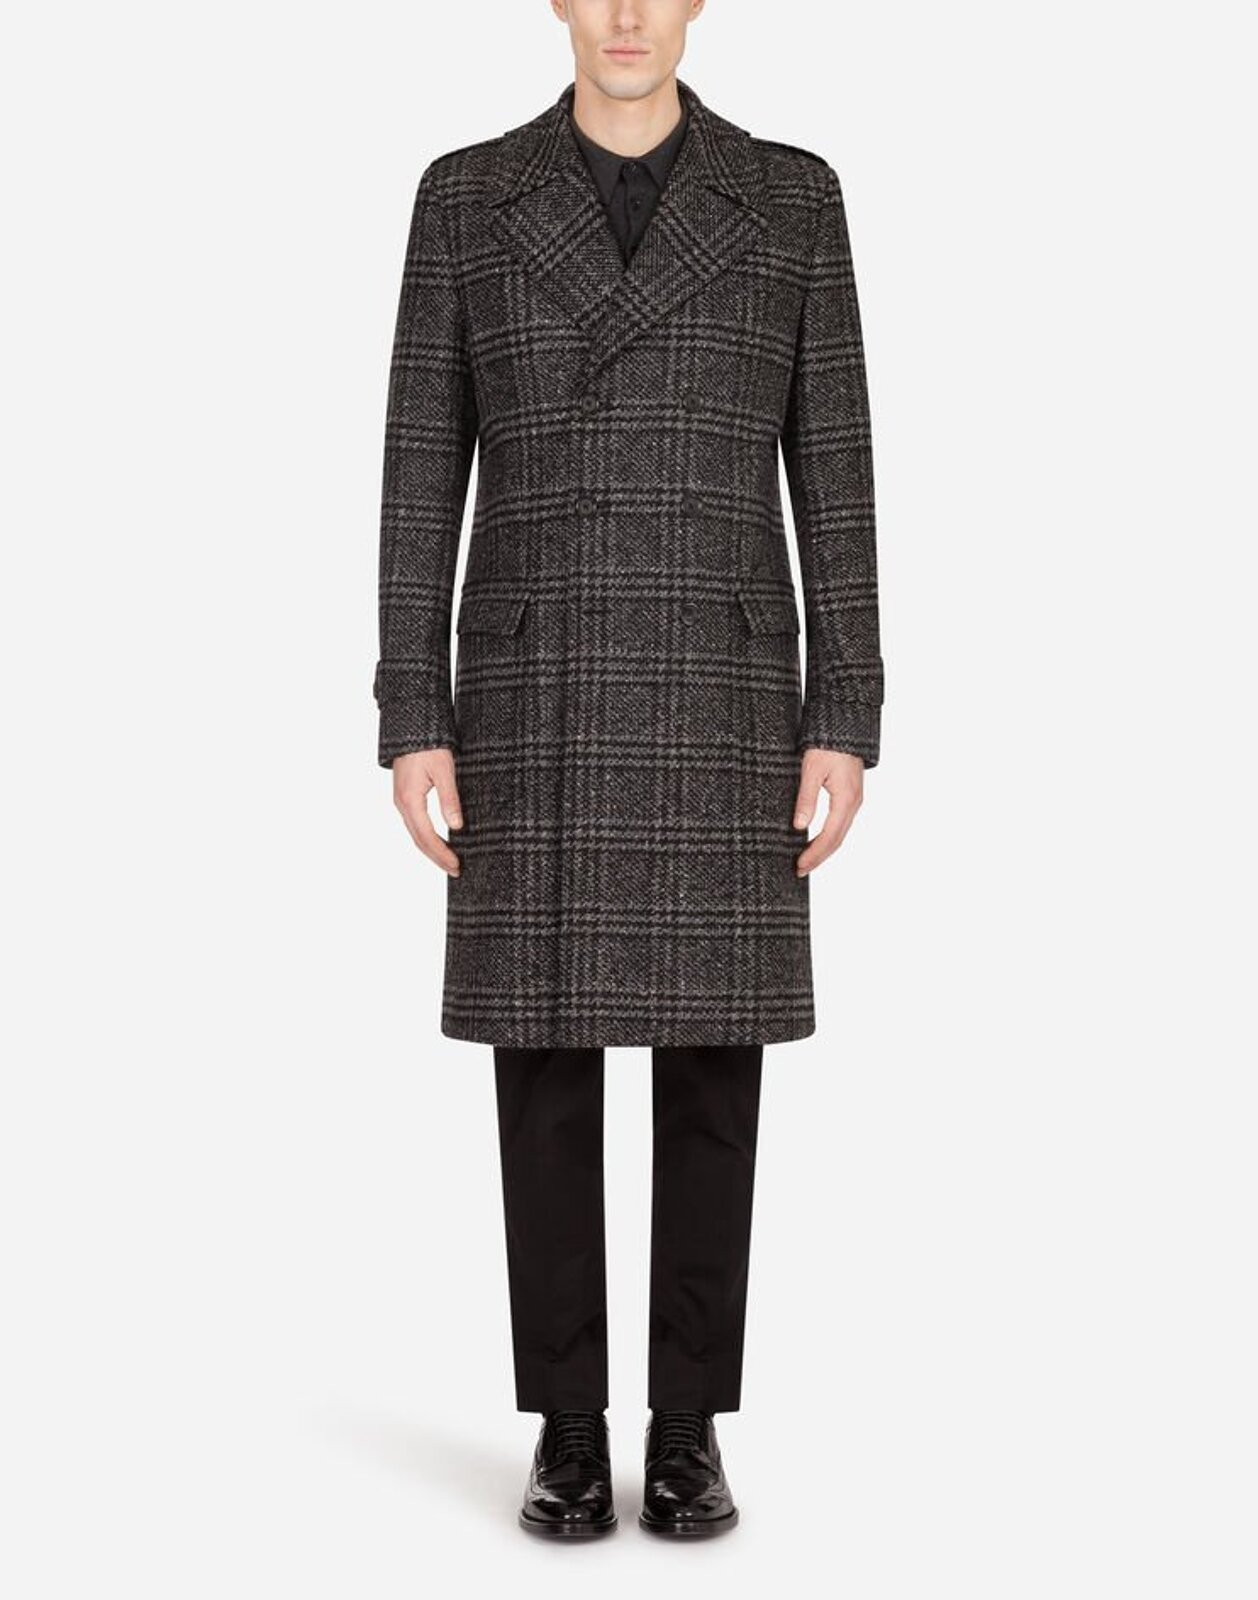 Double Breasted Prince Of Wales Wool Coat - Dolce & Gabbana